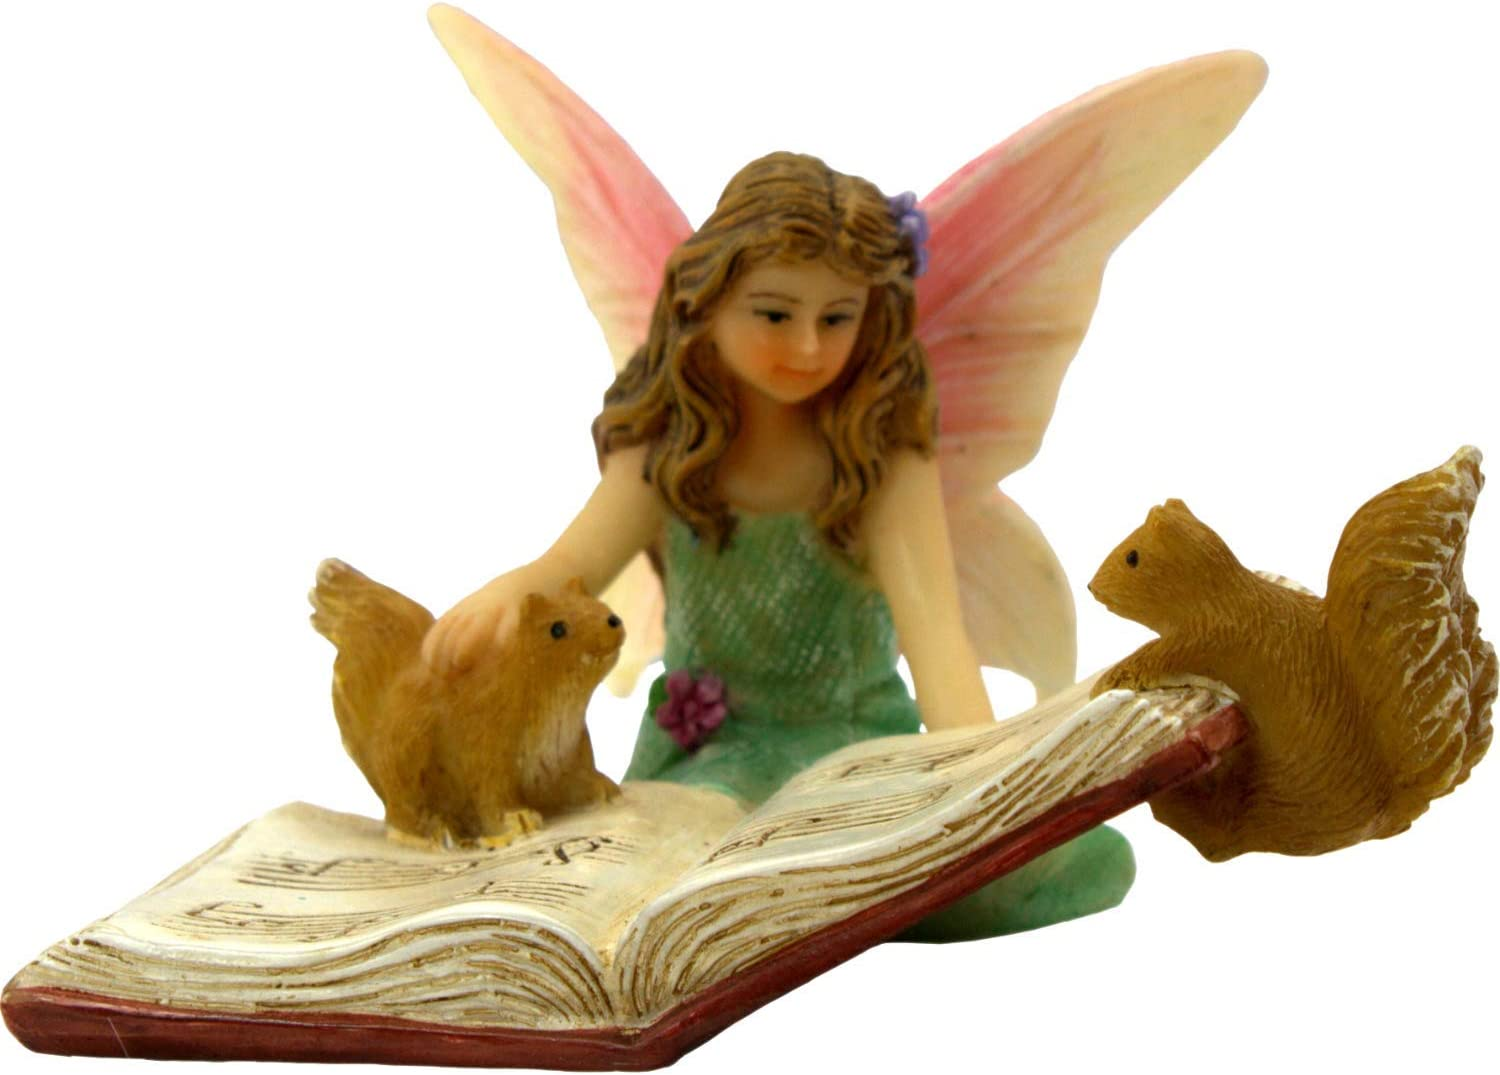 PRETMANNS Fairy Garden Fairies Accessories – Outdoor Fairy Figurine for a Miniature Garden – Sitting Fairy, Bonnie, is Holding a Music Book with Squirrels – Fairy Garden Supplies – 1 Piece